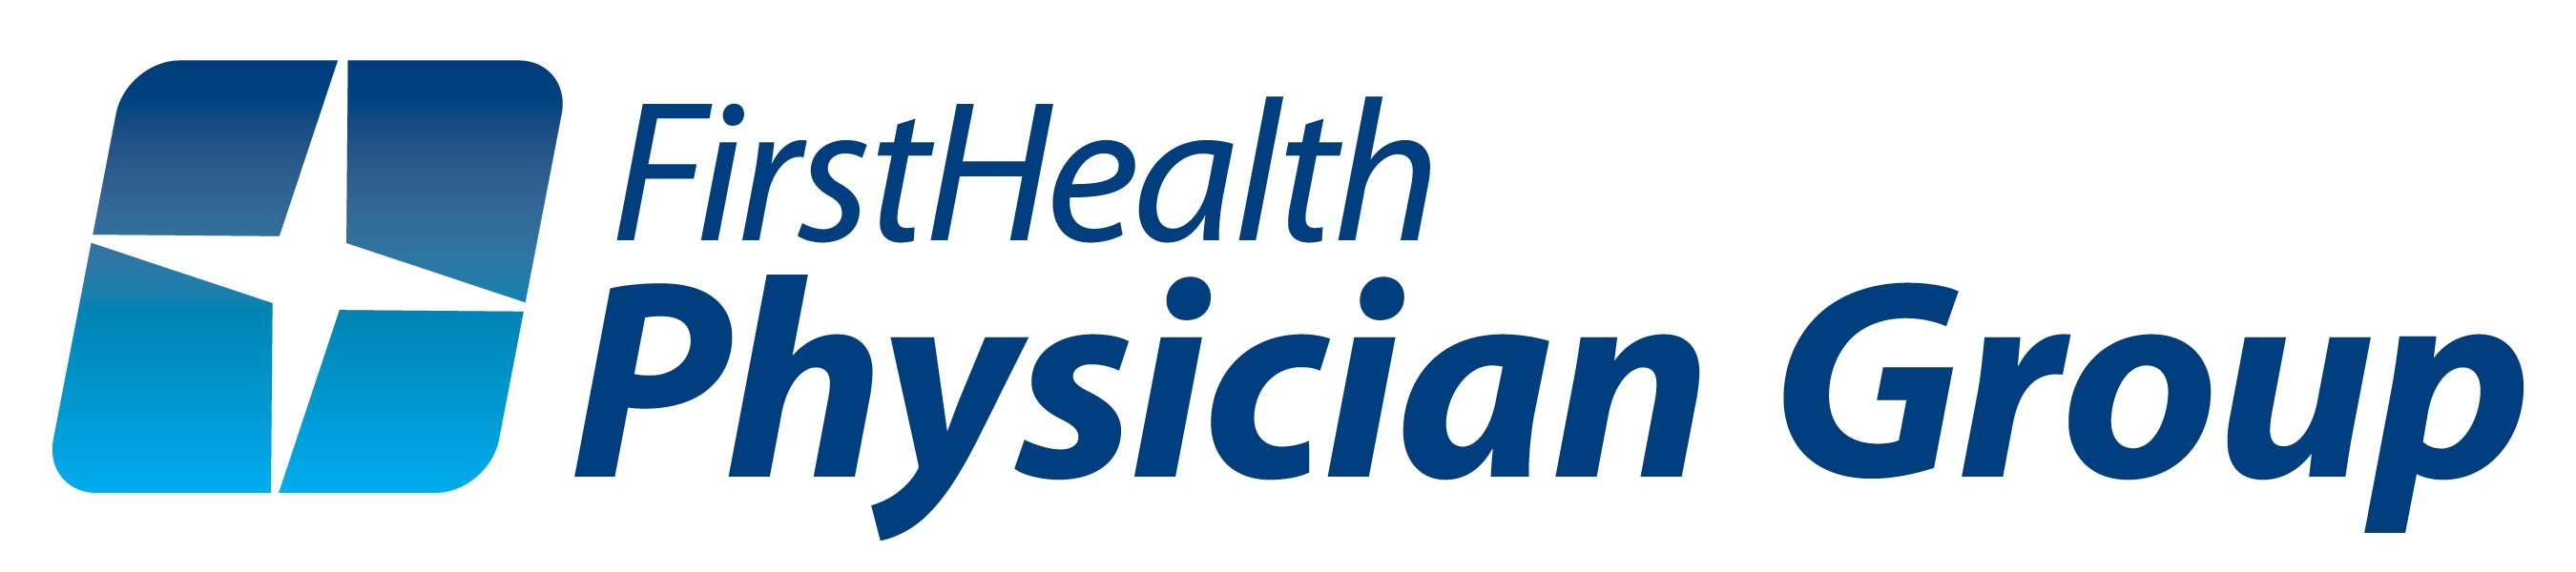 FirstHealth Physician Group Logo